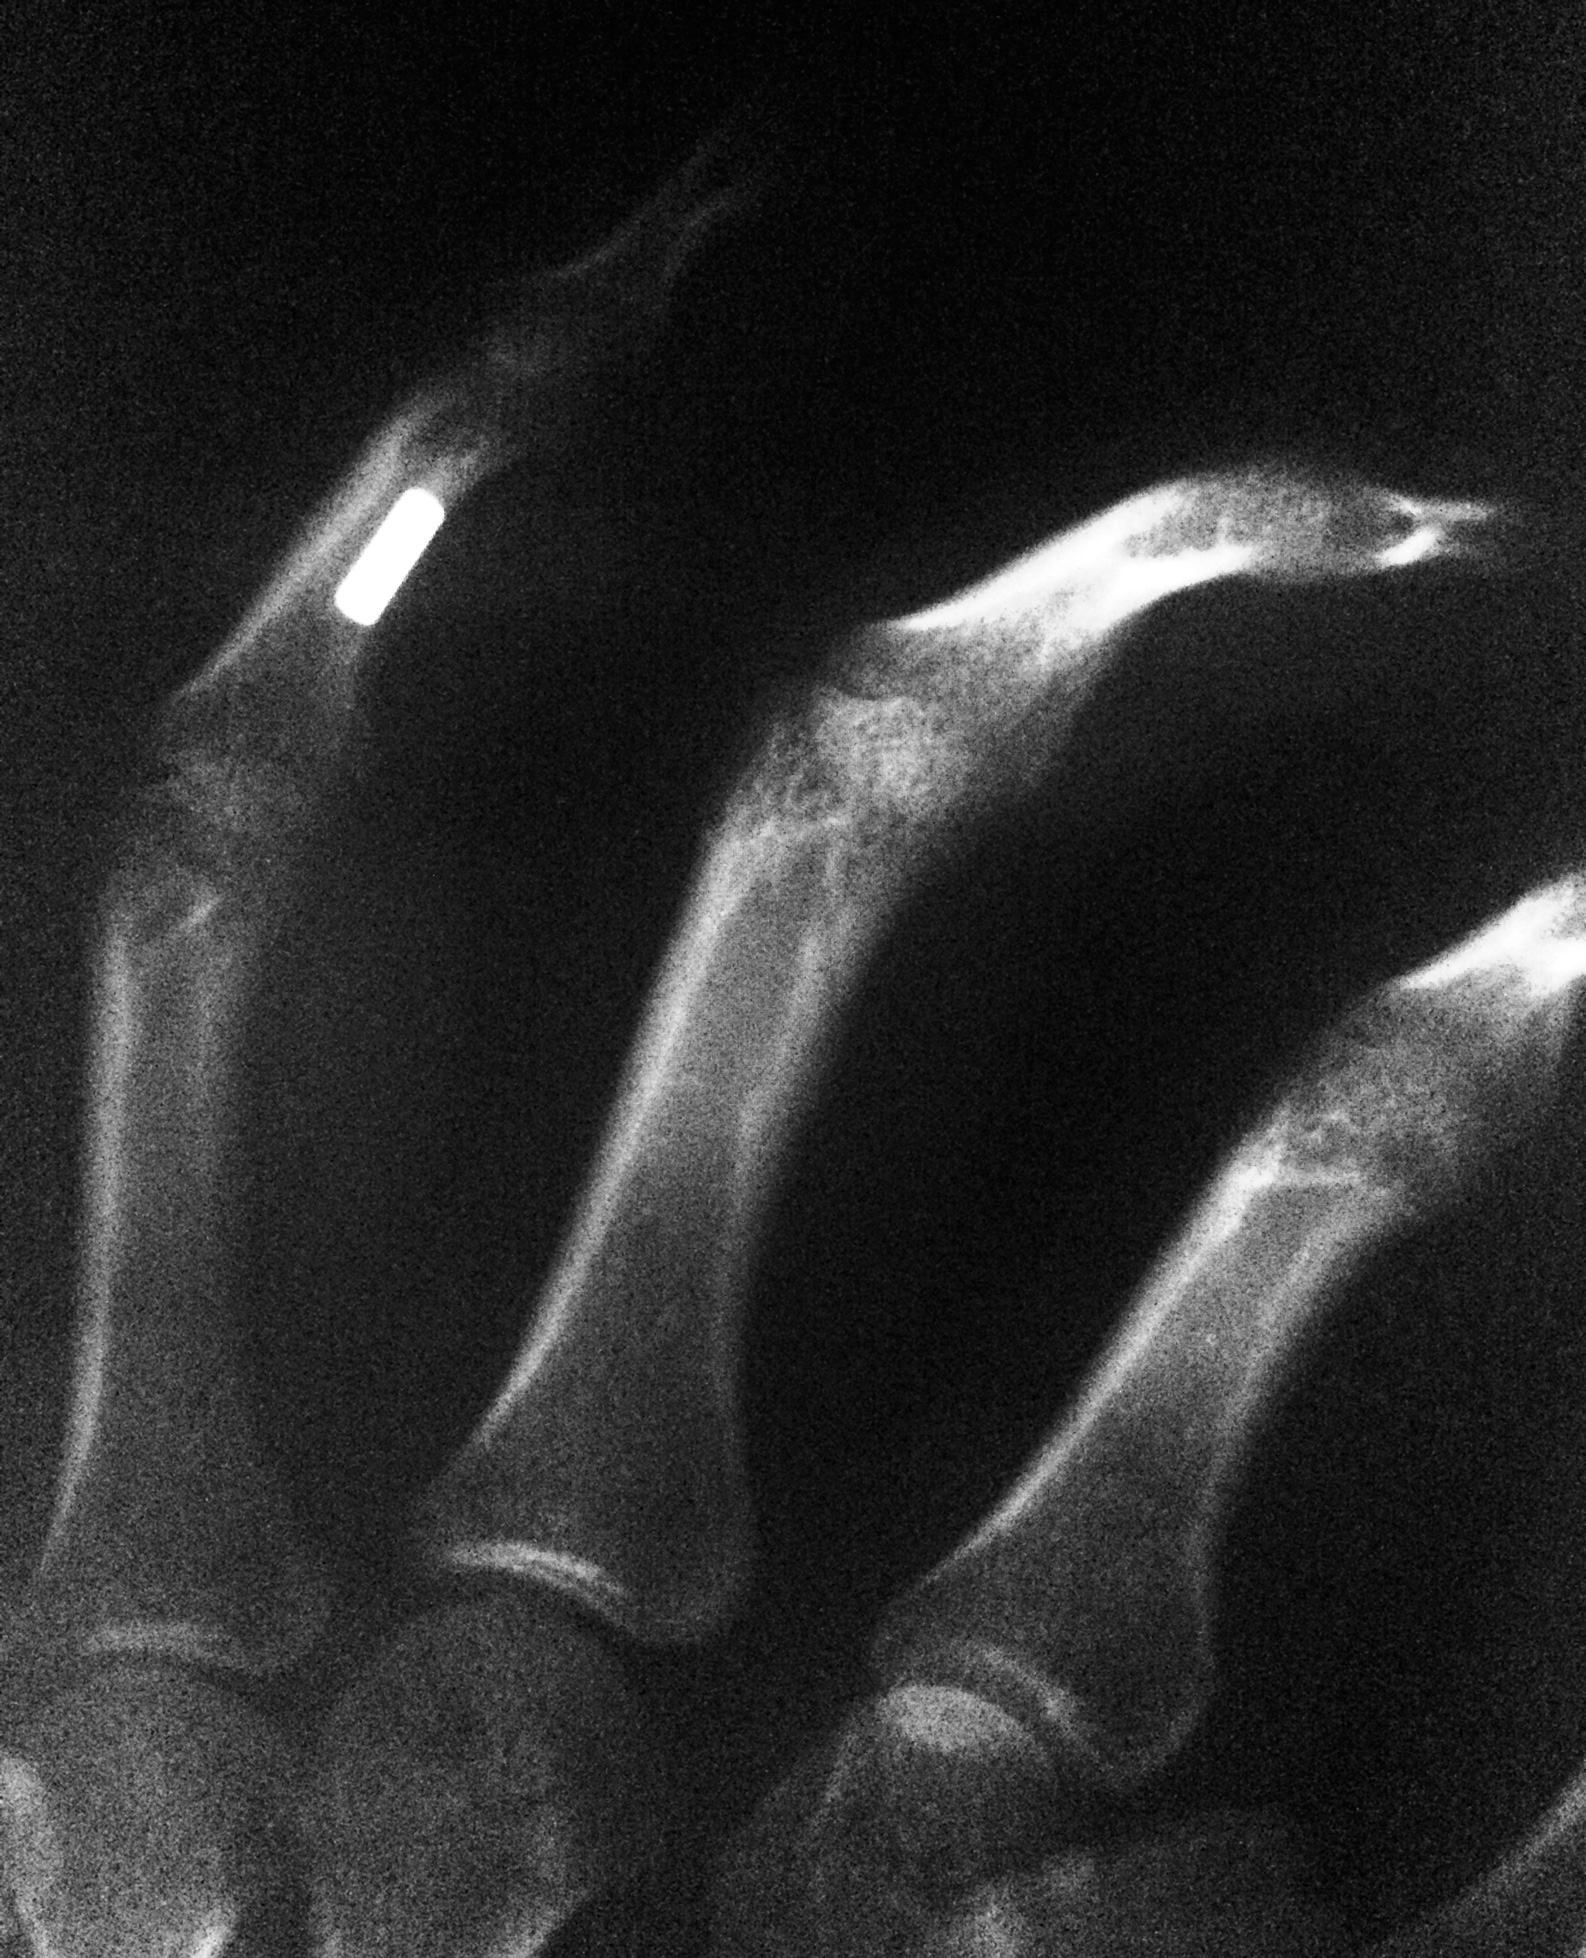 X-Ray of the magnet in my finger